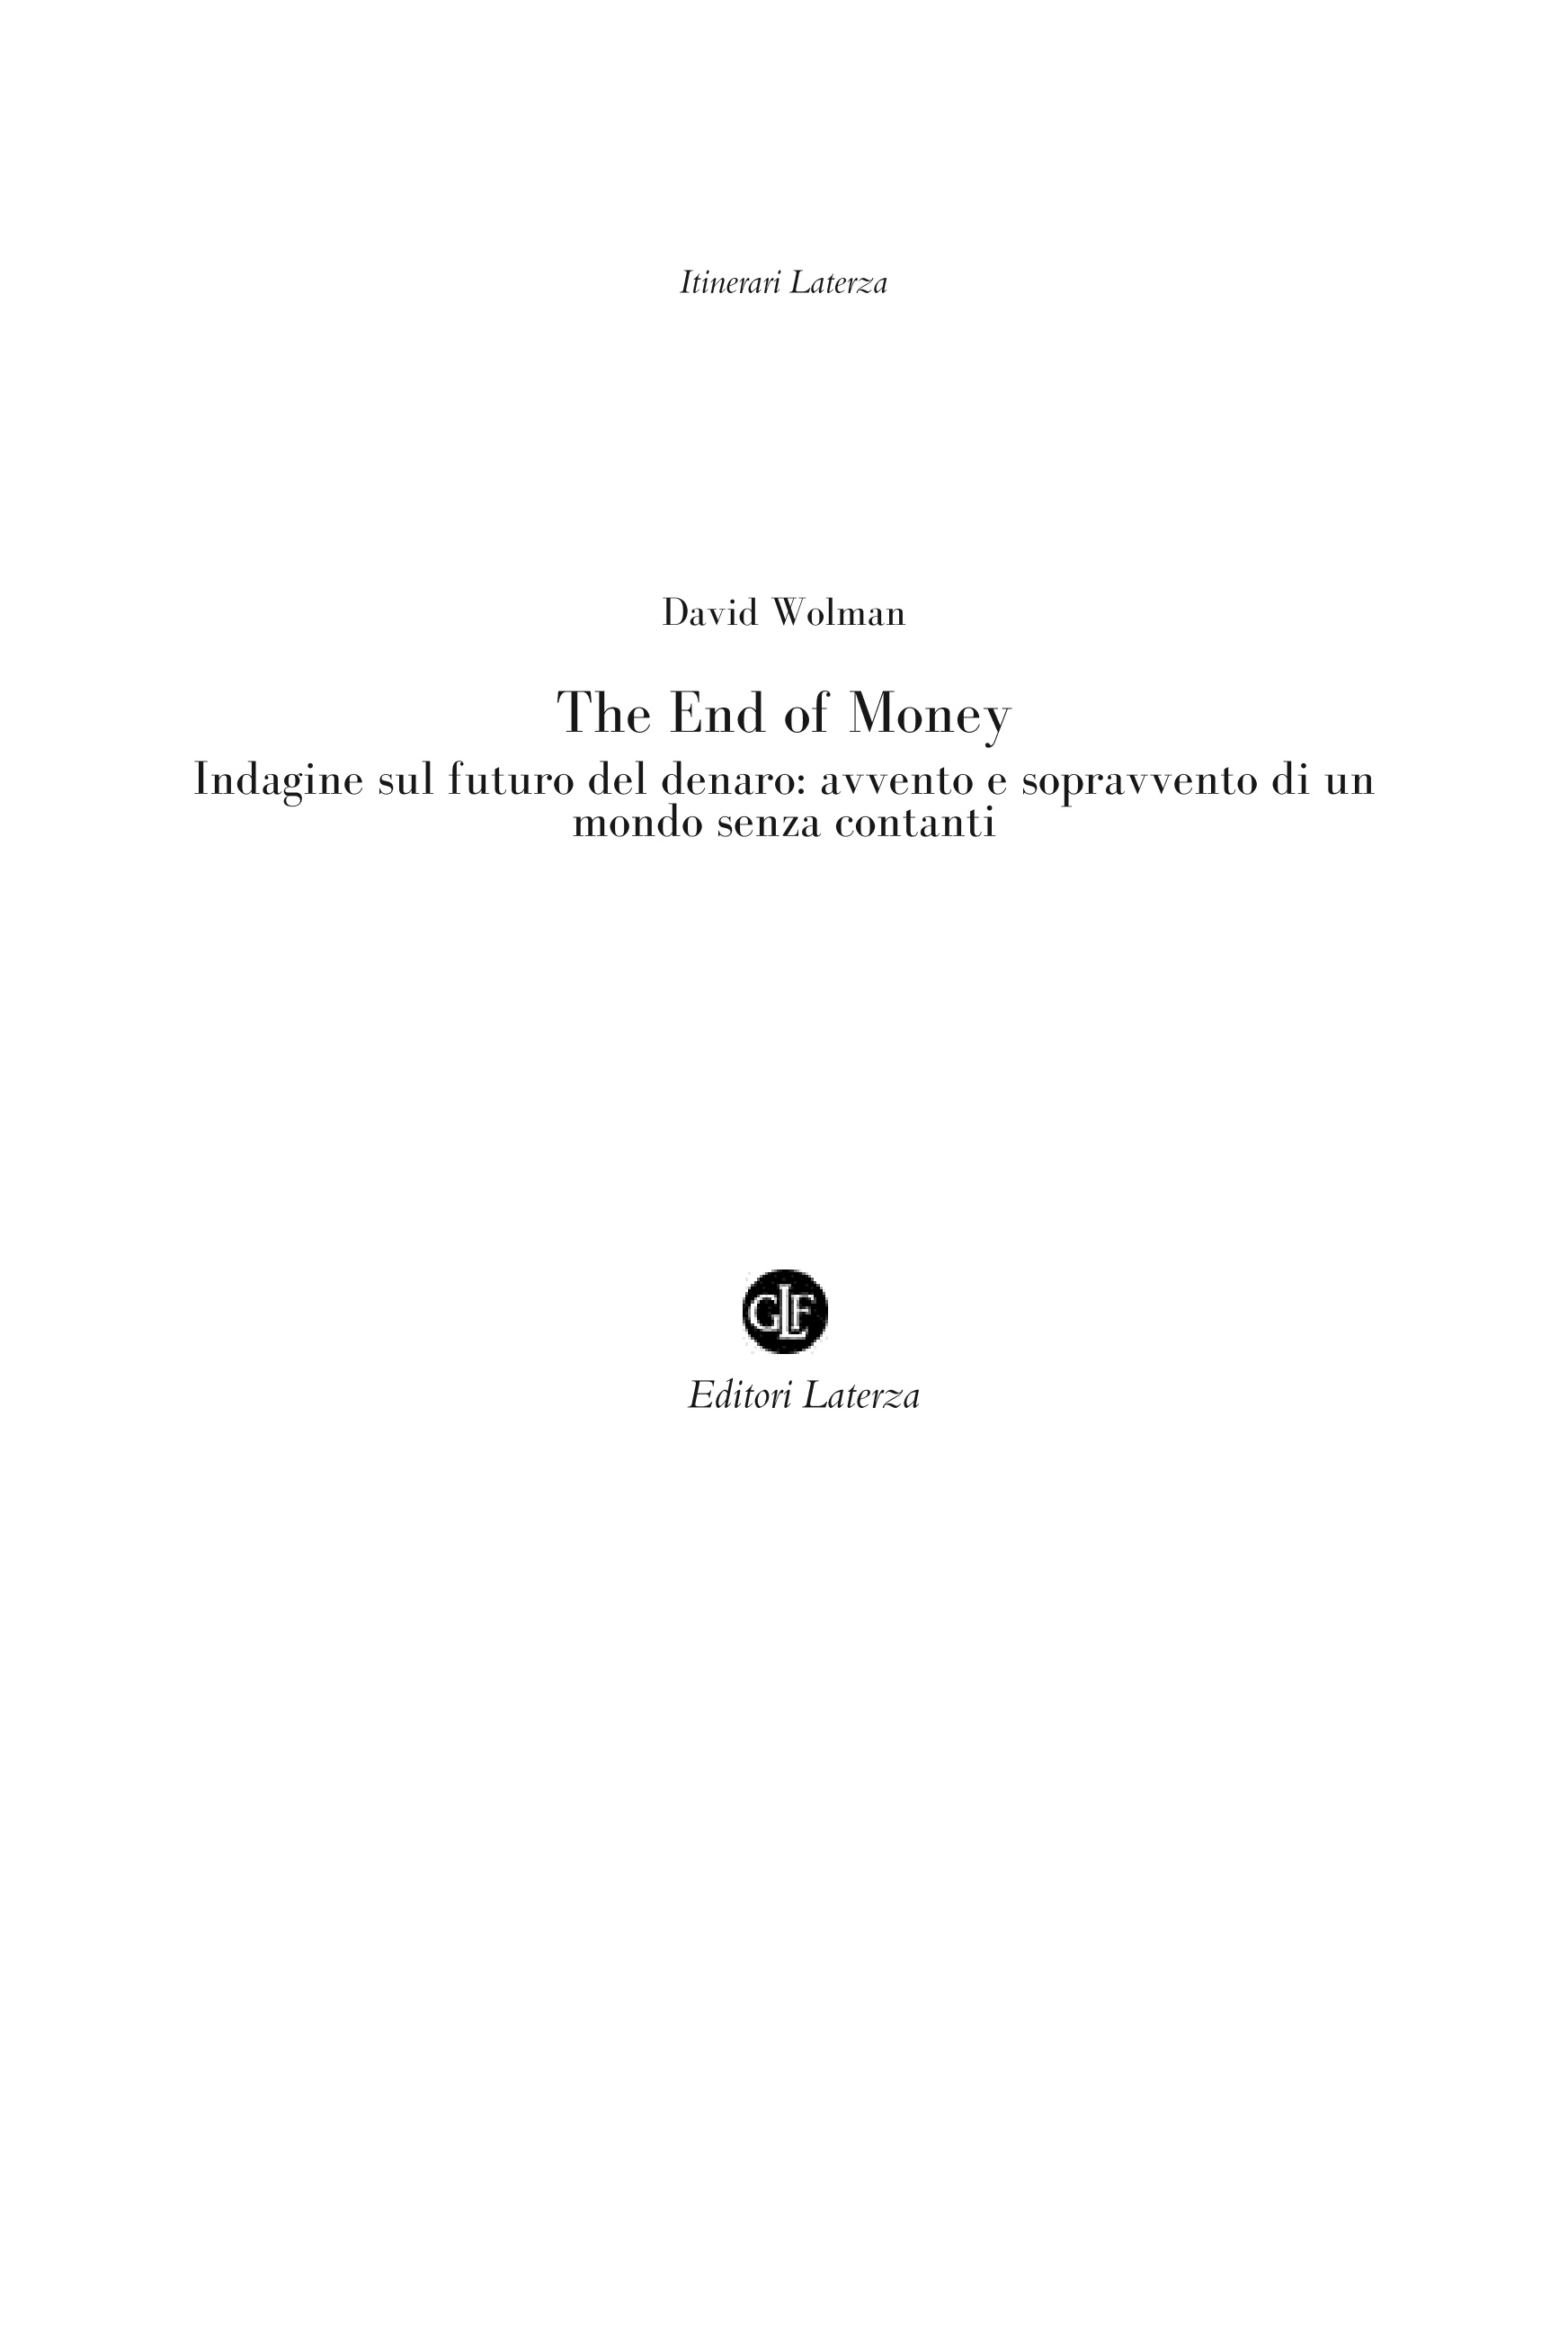 The End of Money